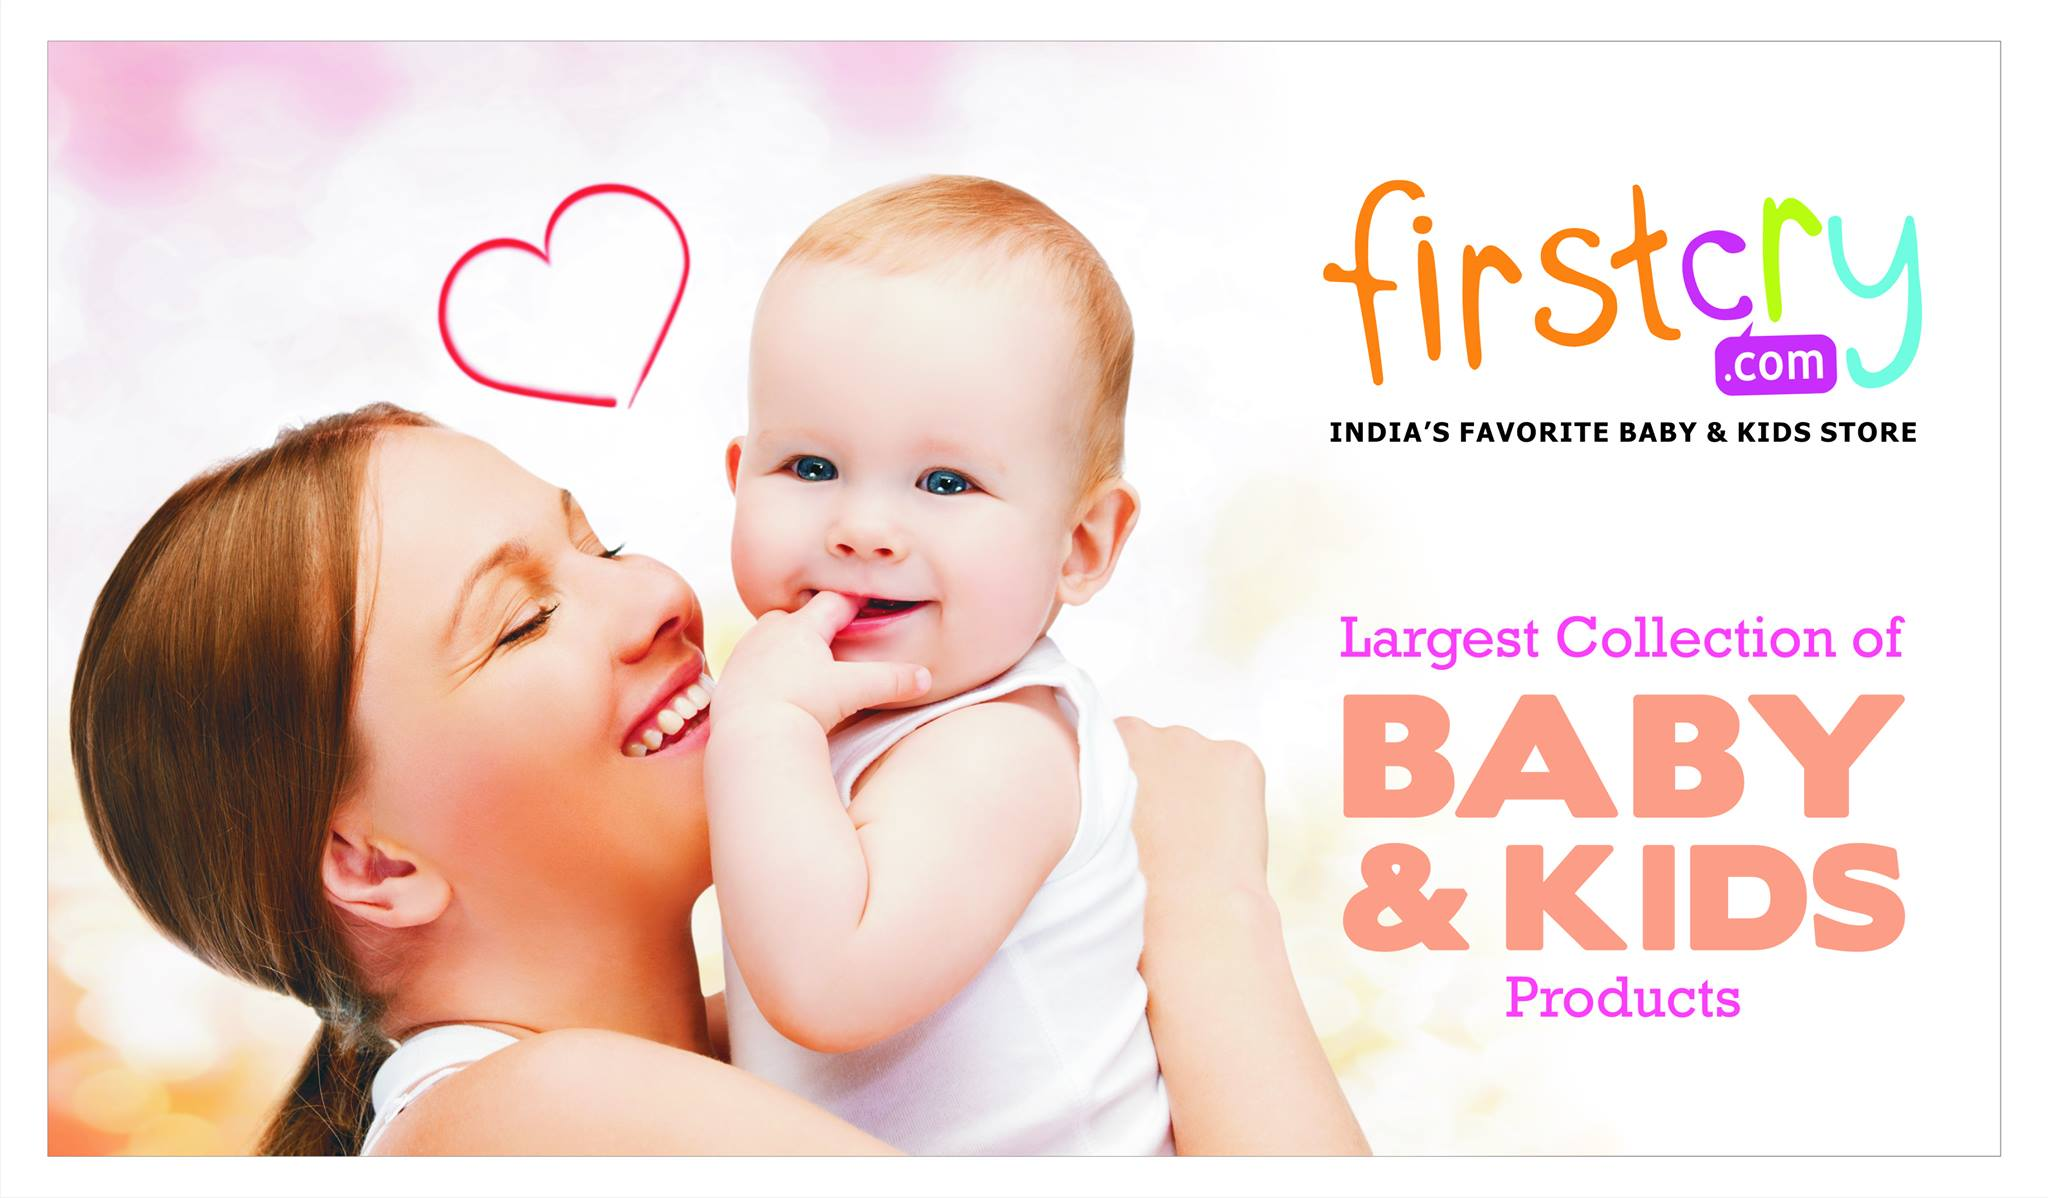 Firstcry Offer : Get Rs 150 off on minimum purchase of Rs 700